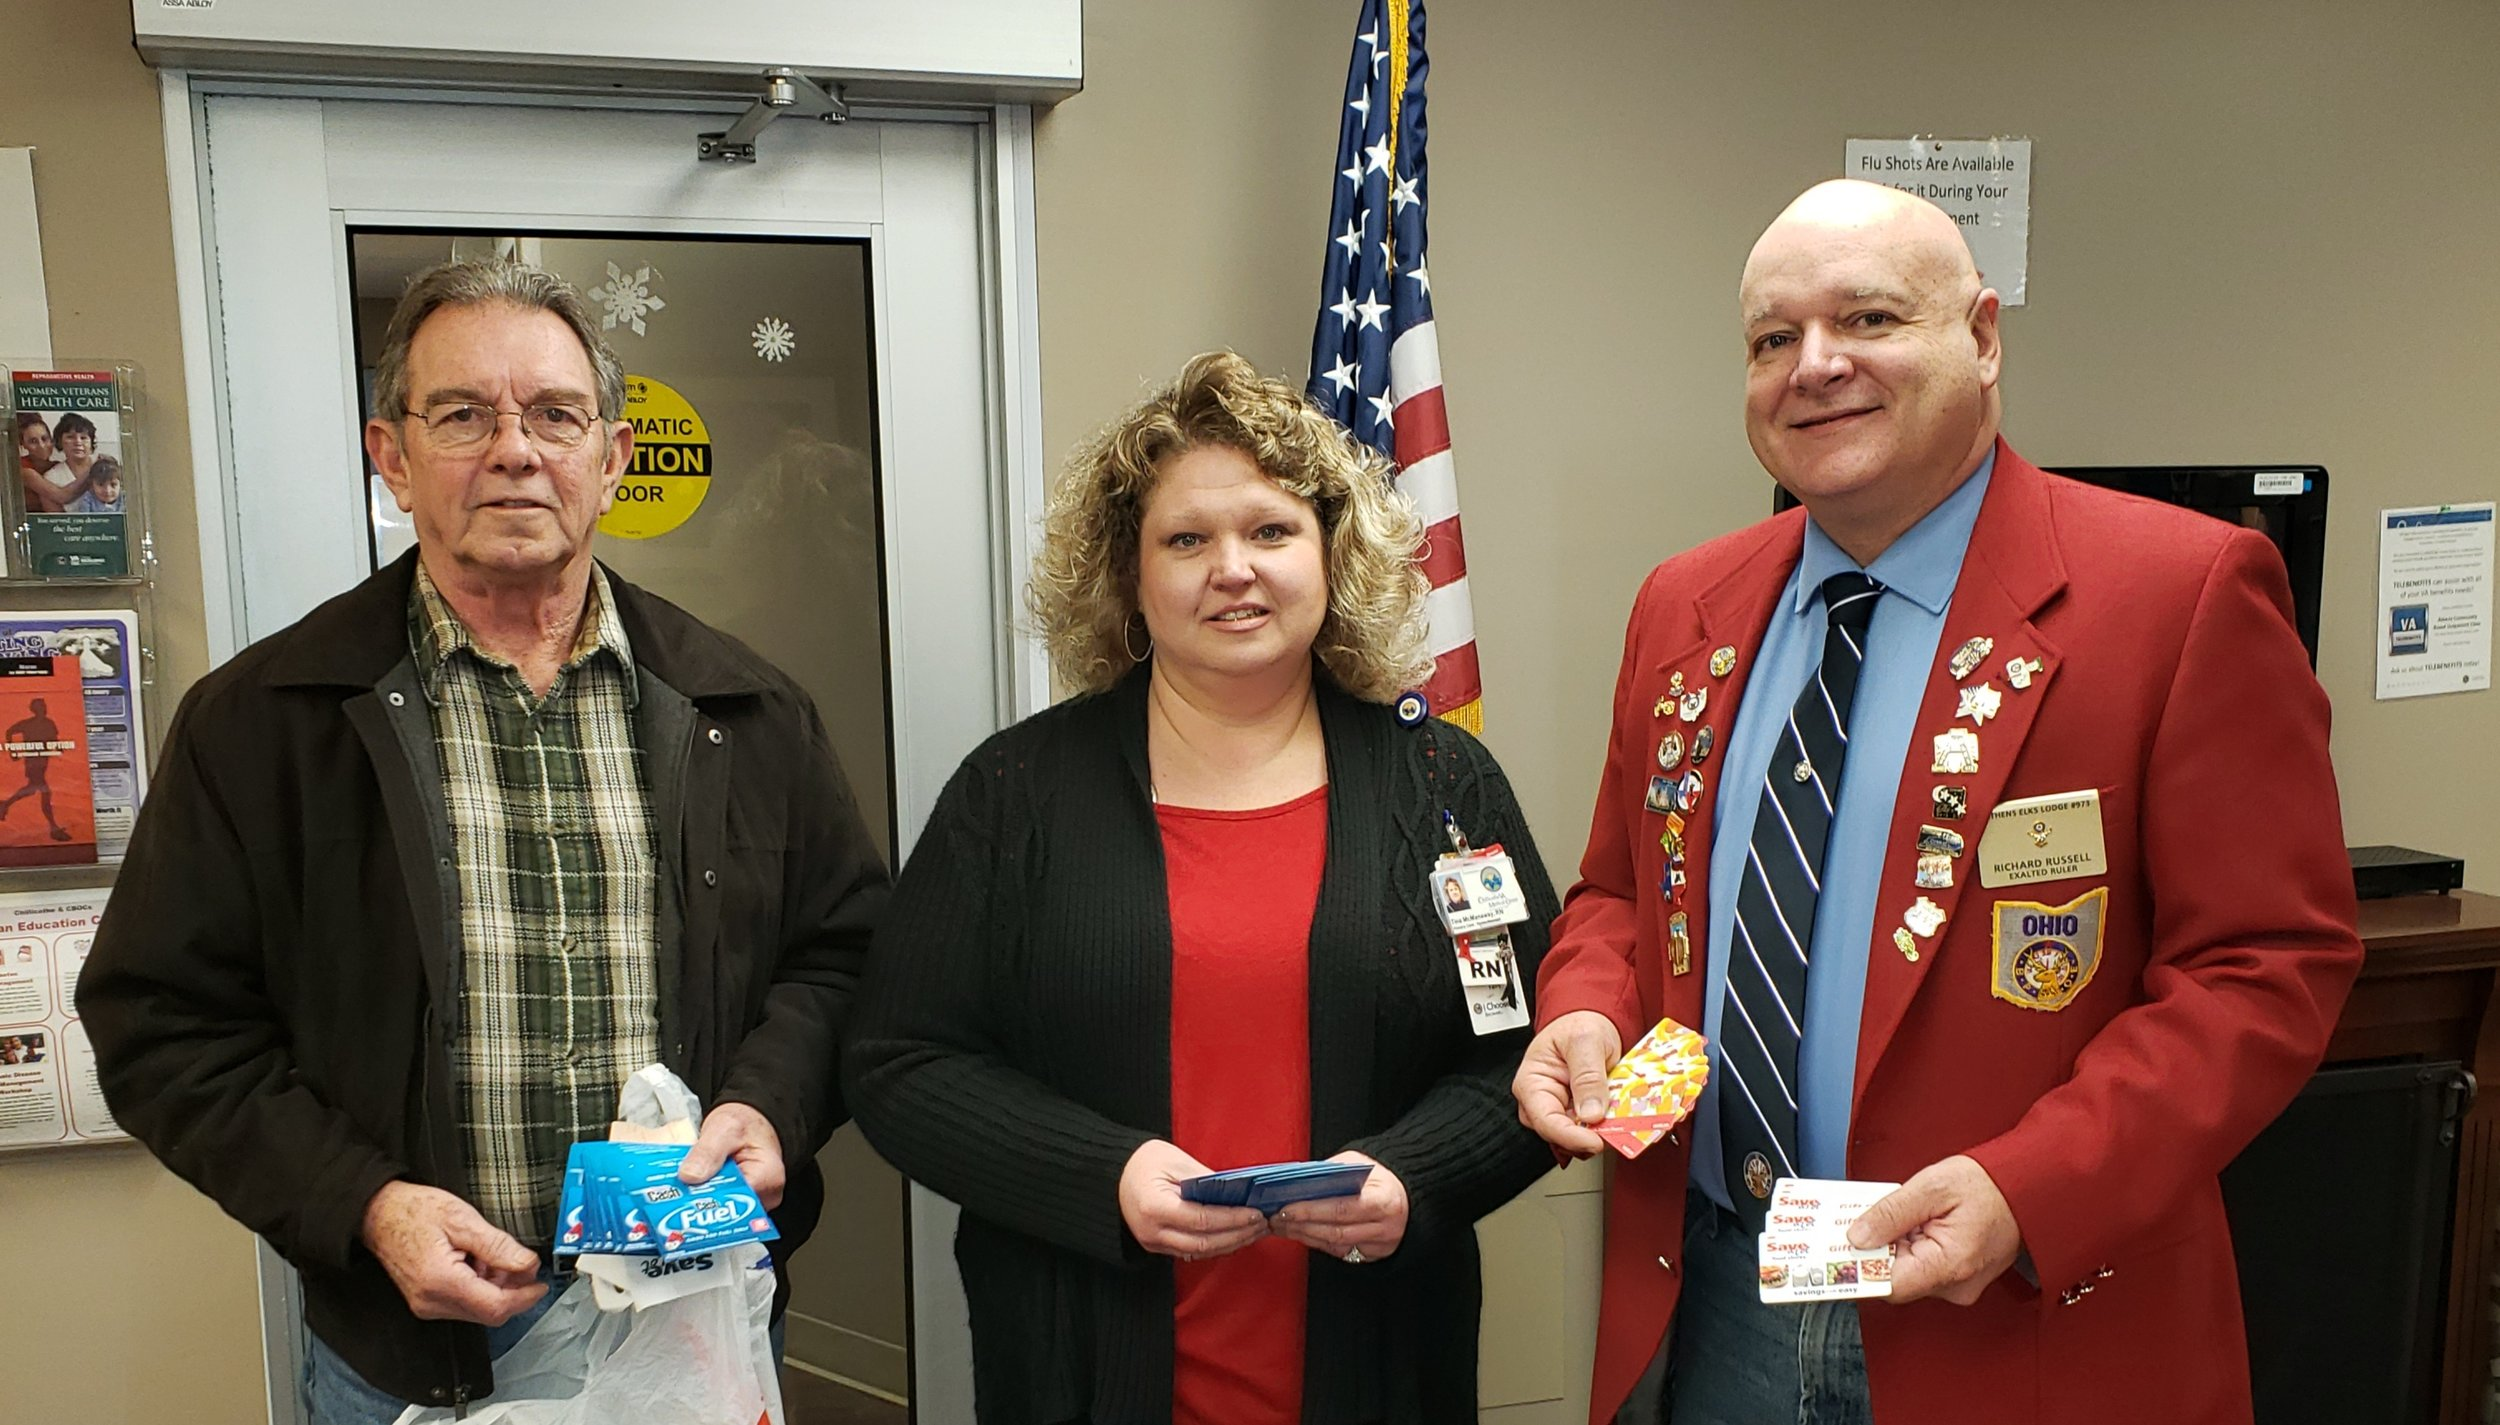 Pictured from L to R are Tim Lairson Athens Elks 973, Tina McManauy Department of Veterans Affairs and Rich Russell Athens Elks 973 Exalted Ruler.